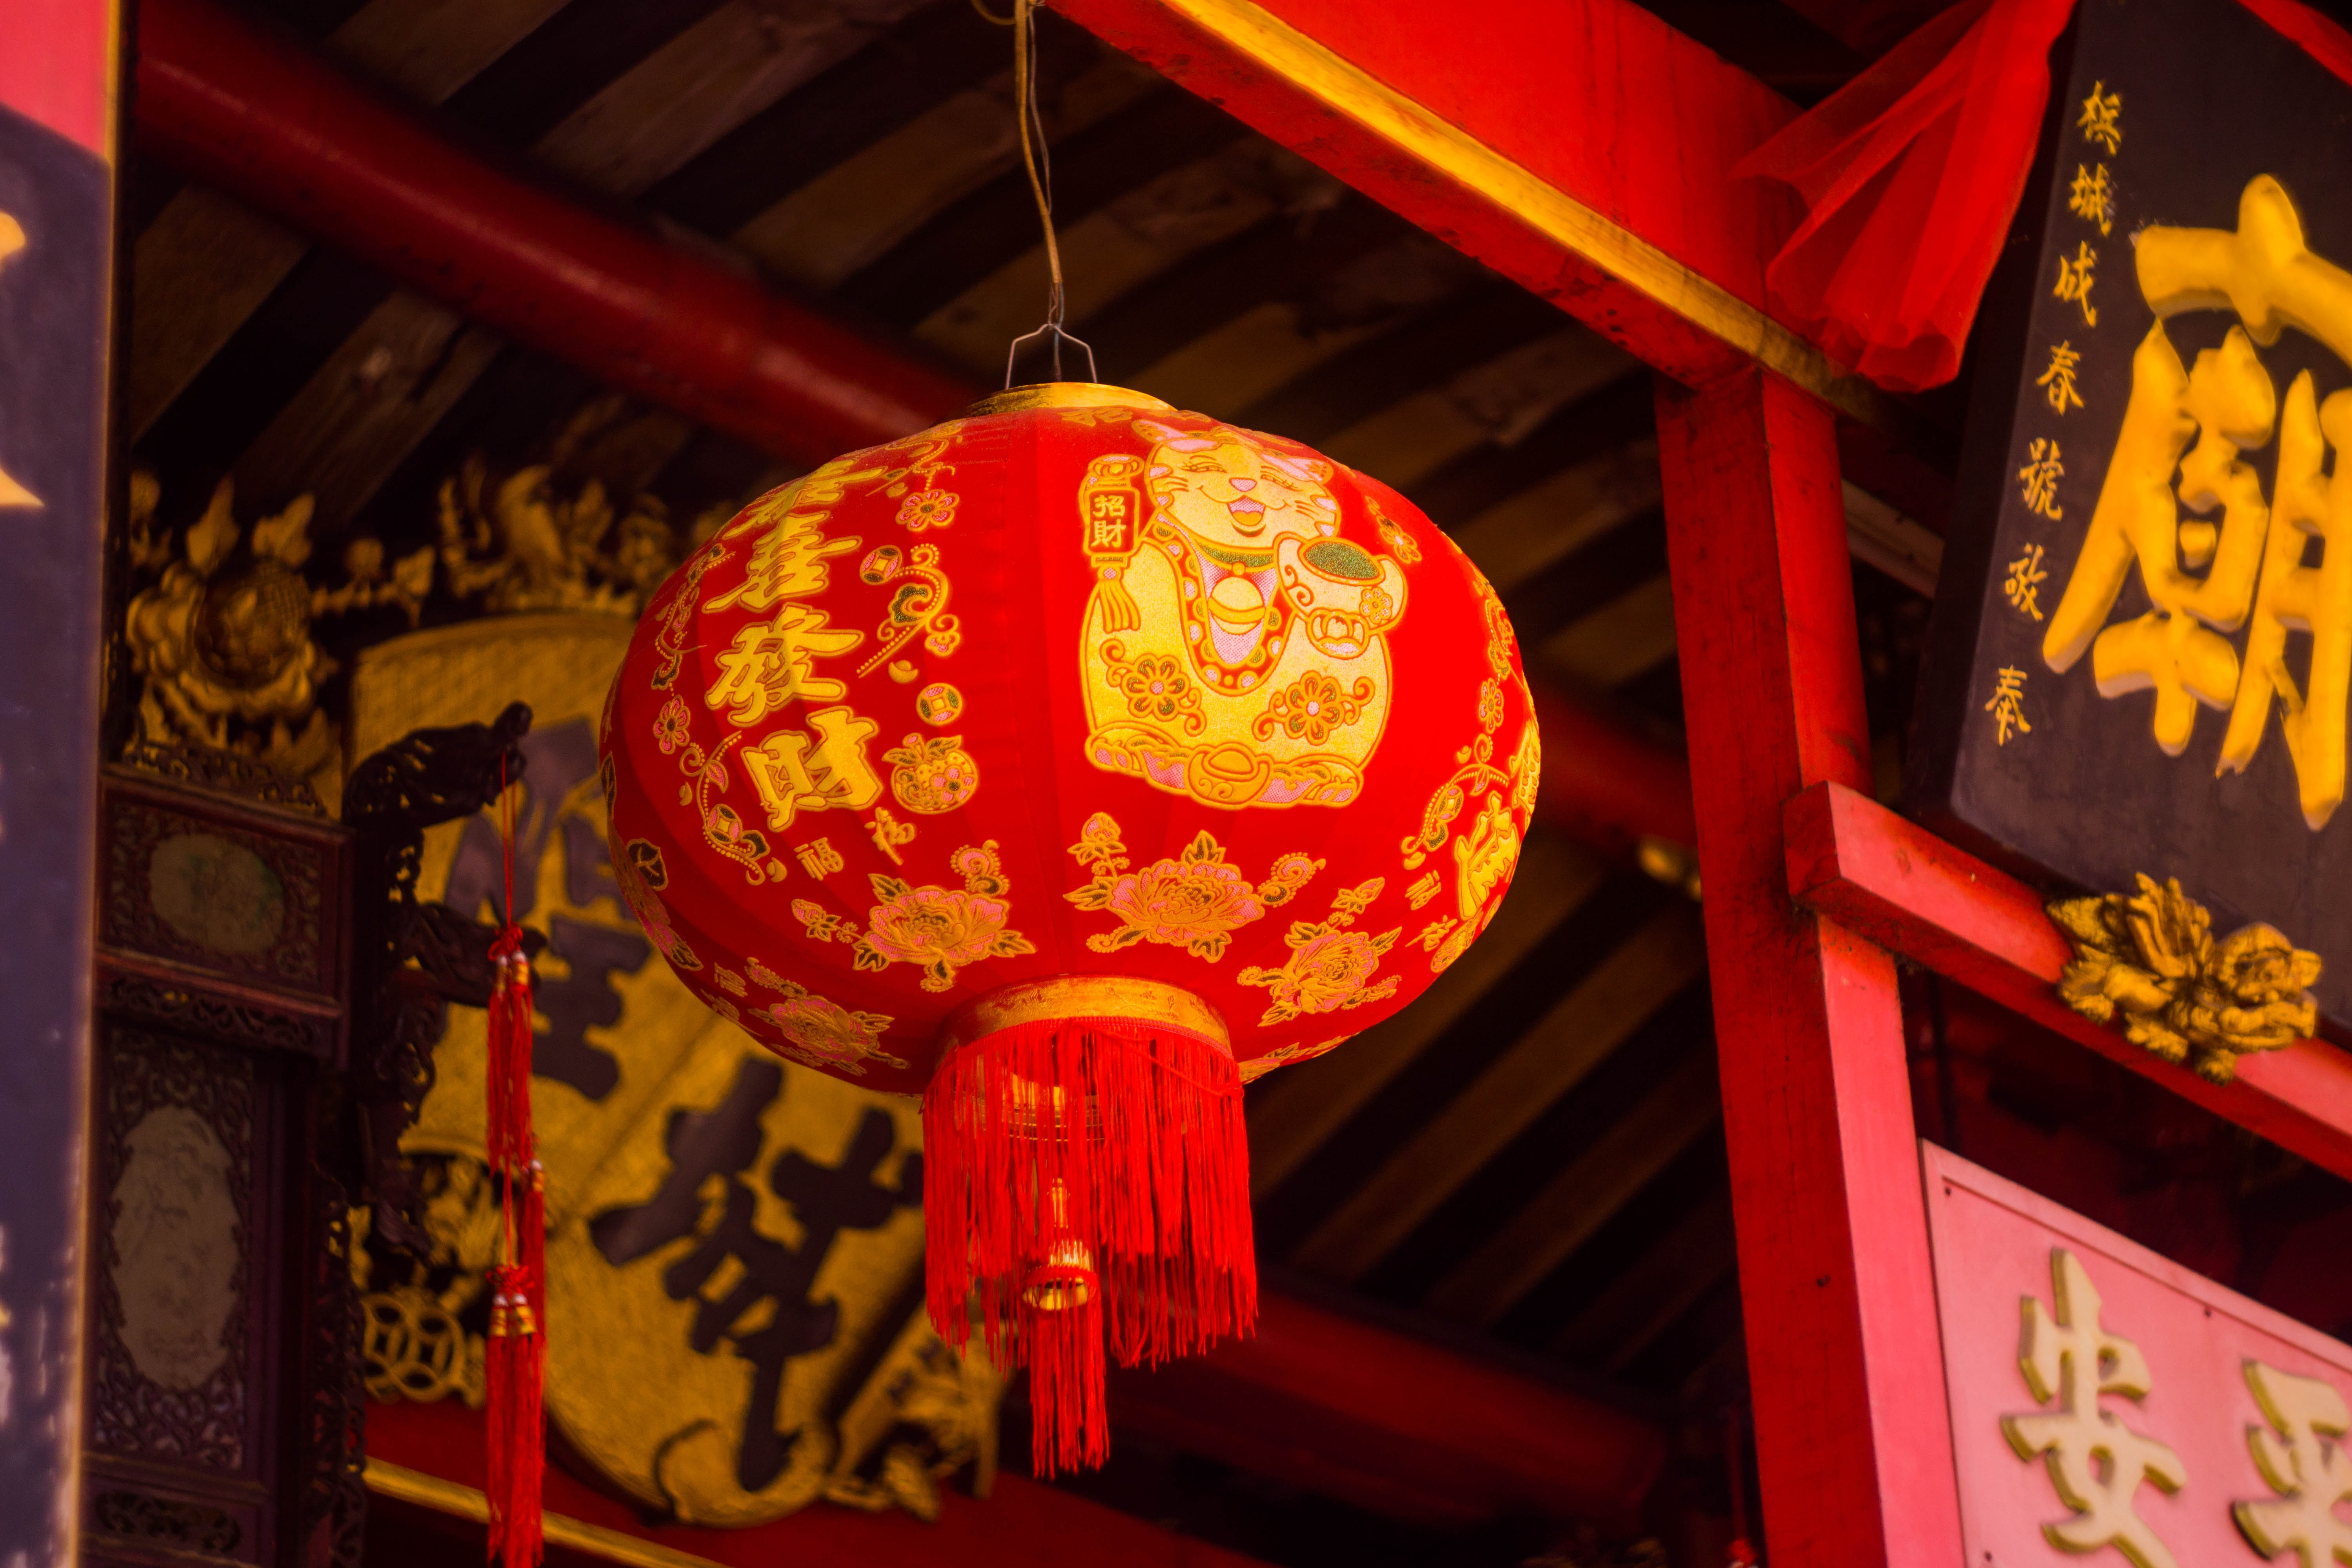 red and gold floral lantern